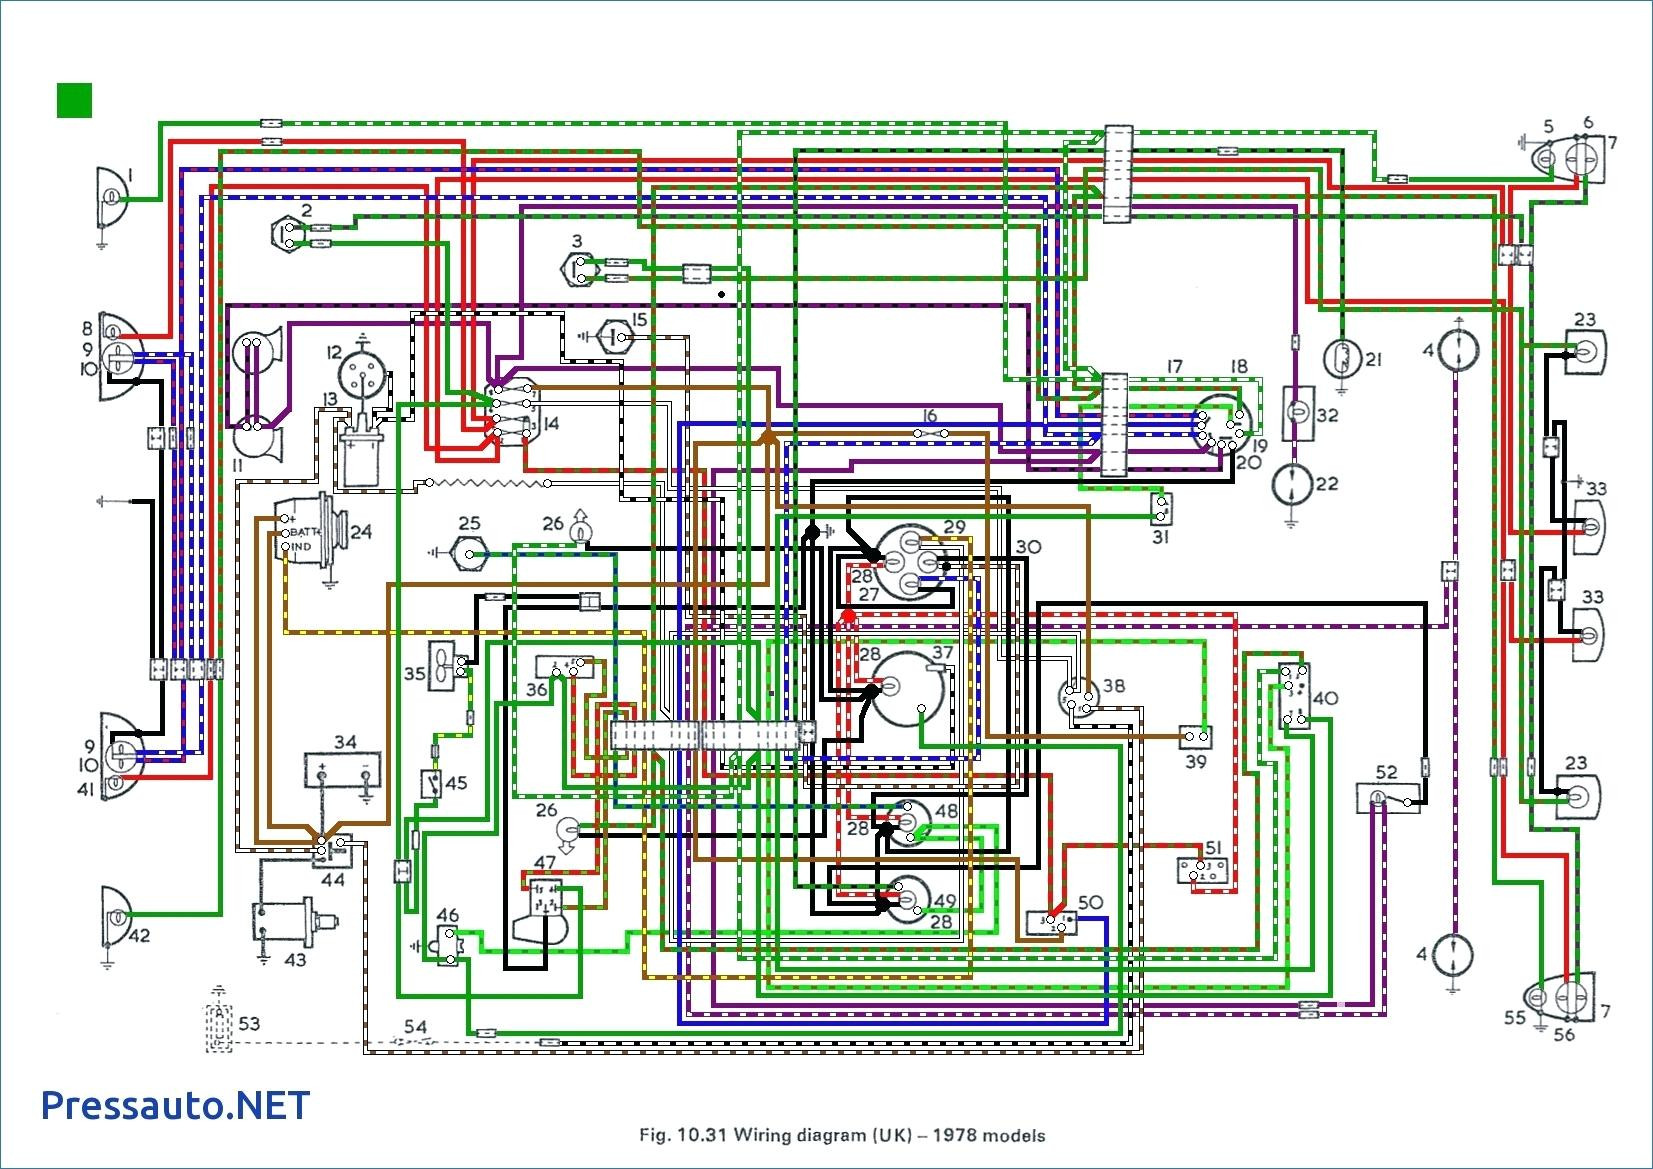 68 Camaro Wiring Schematic For - Radio Wiring For 1997 Ford E 150 for  Wiring Diagram SchematicsWiring Diagram Schematics